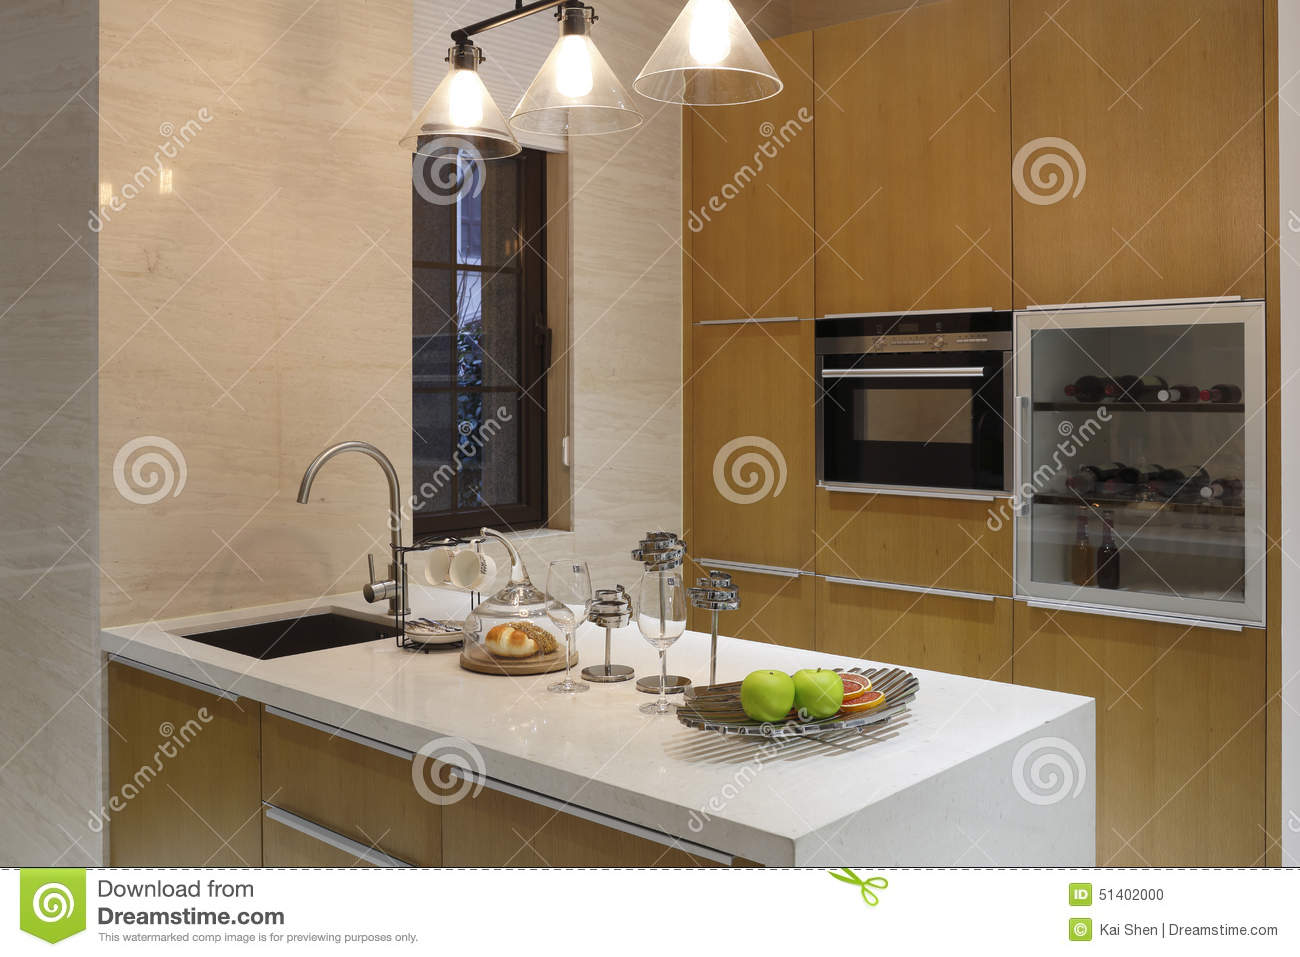 Concise And Lively Multi-functional Kitchen Stock Photo - Image of ...